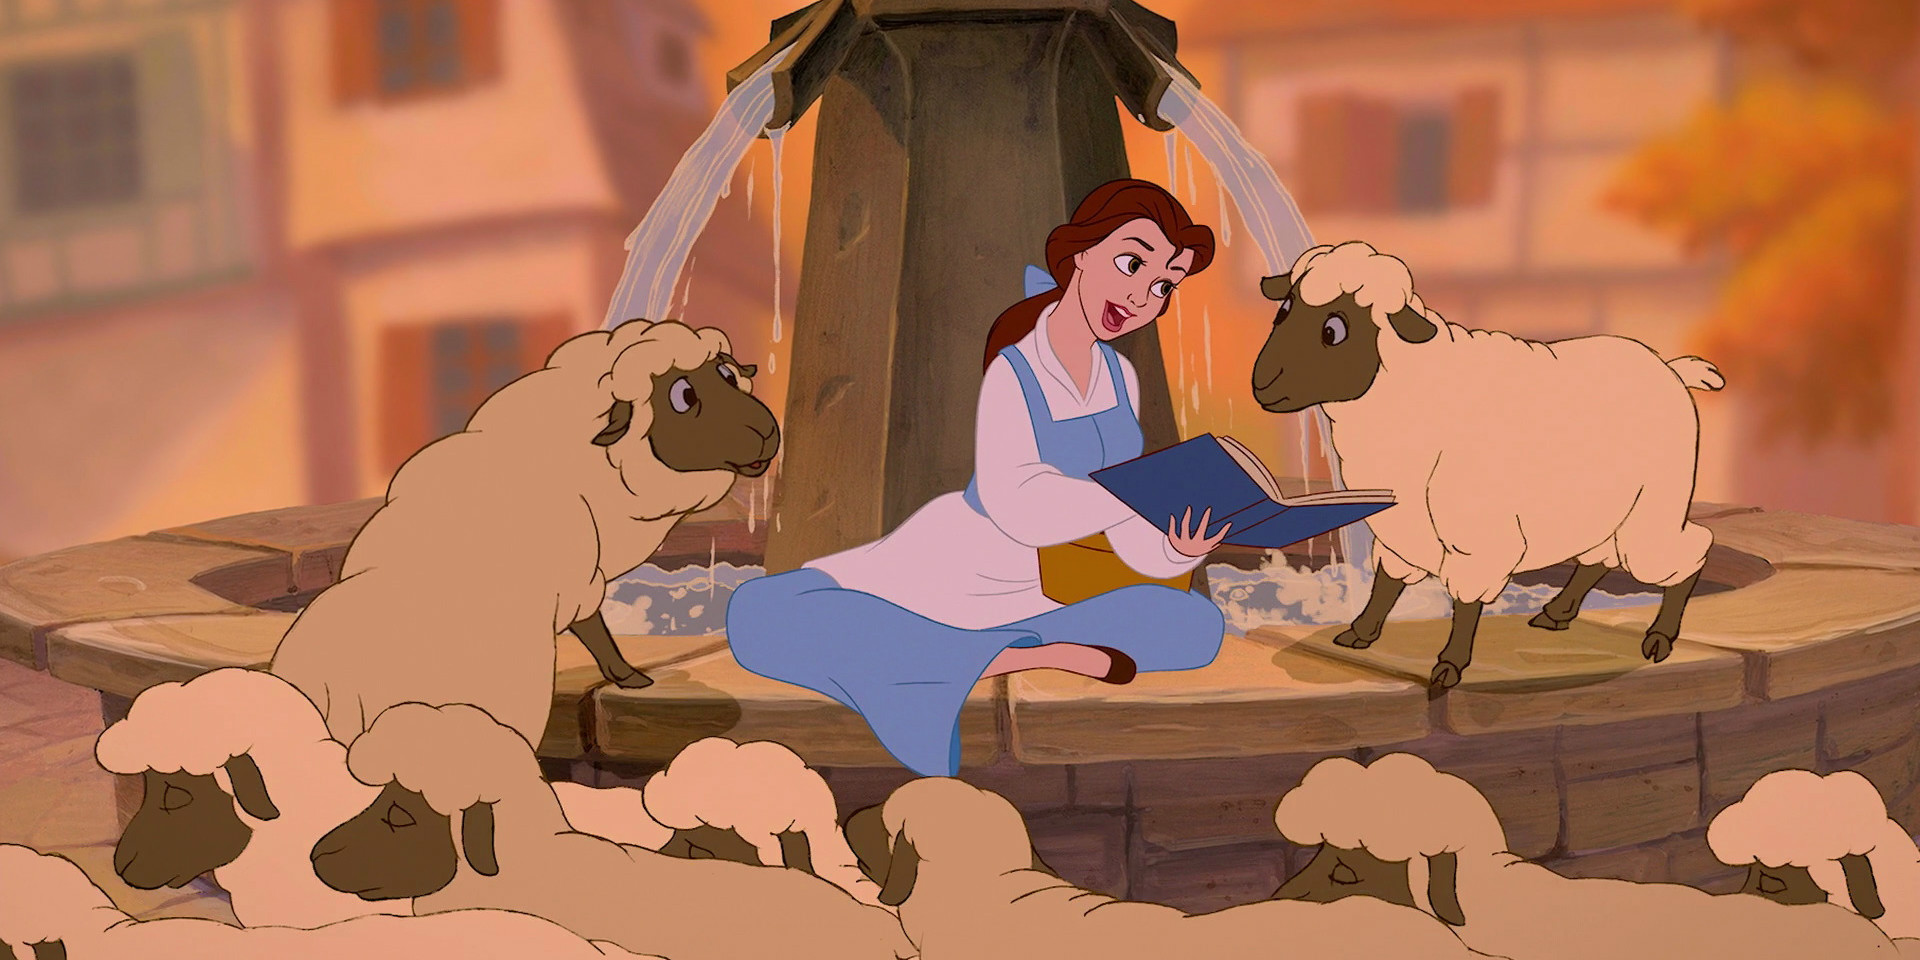 Every Disney Princess Ranked From Most Worthless To Most Powerful